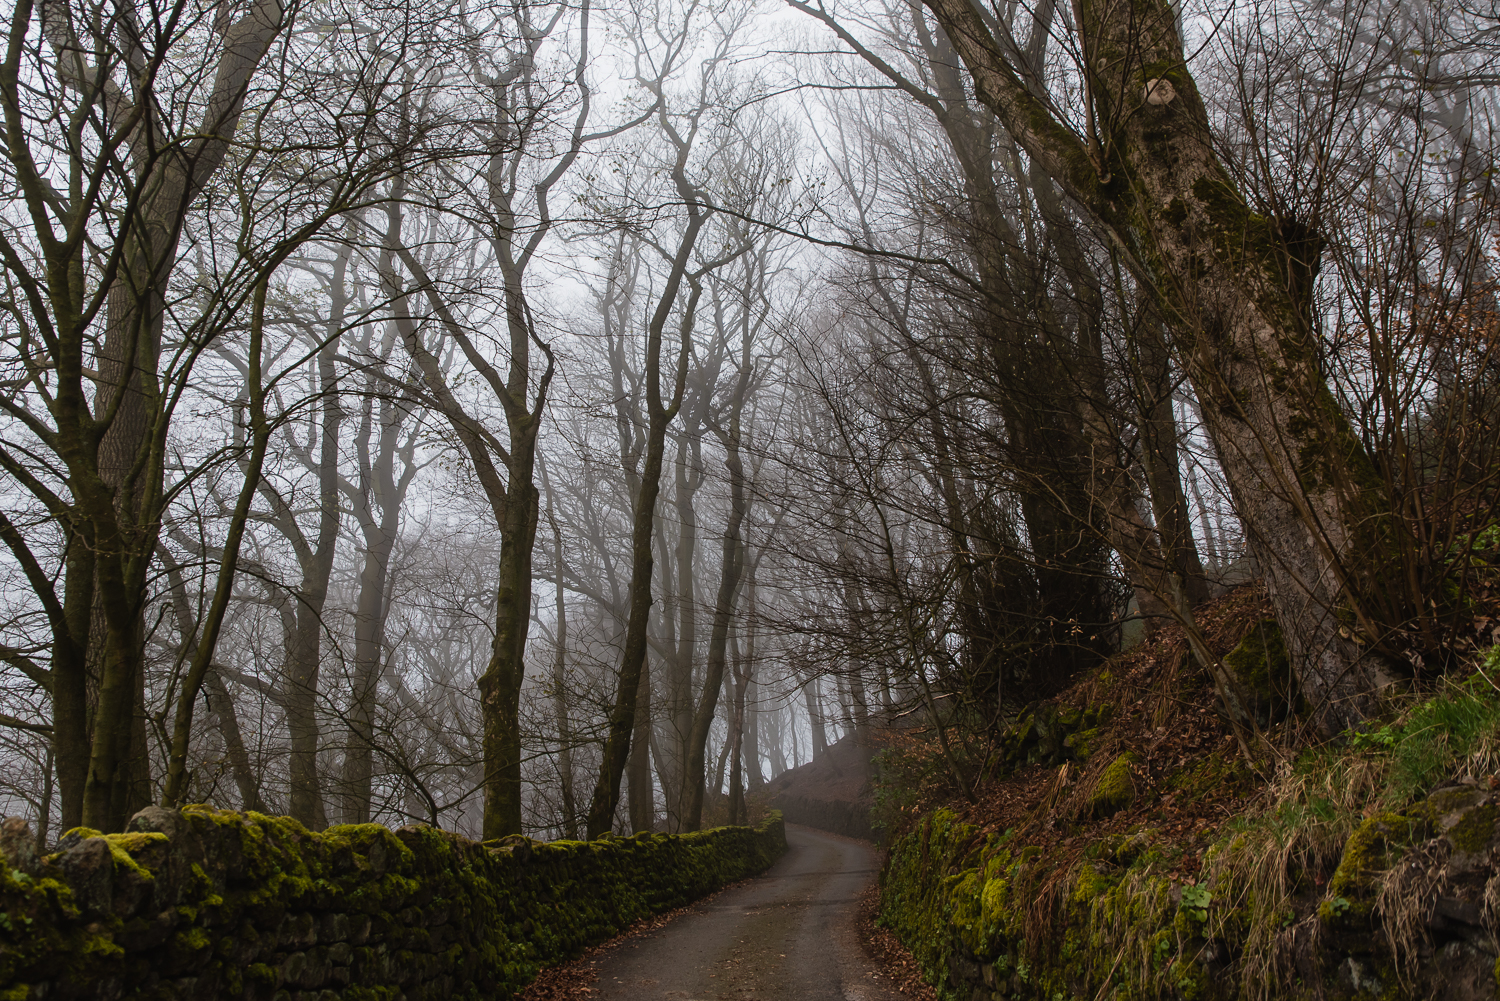 Road leading up Cragg Hall in West Yorkshire